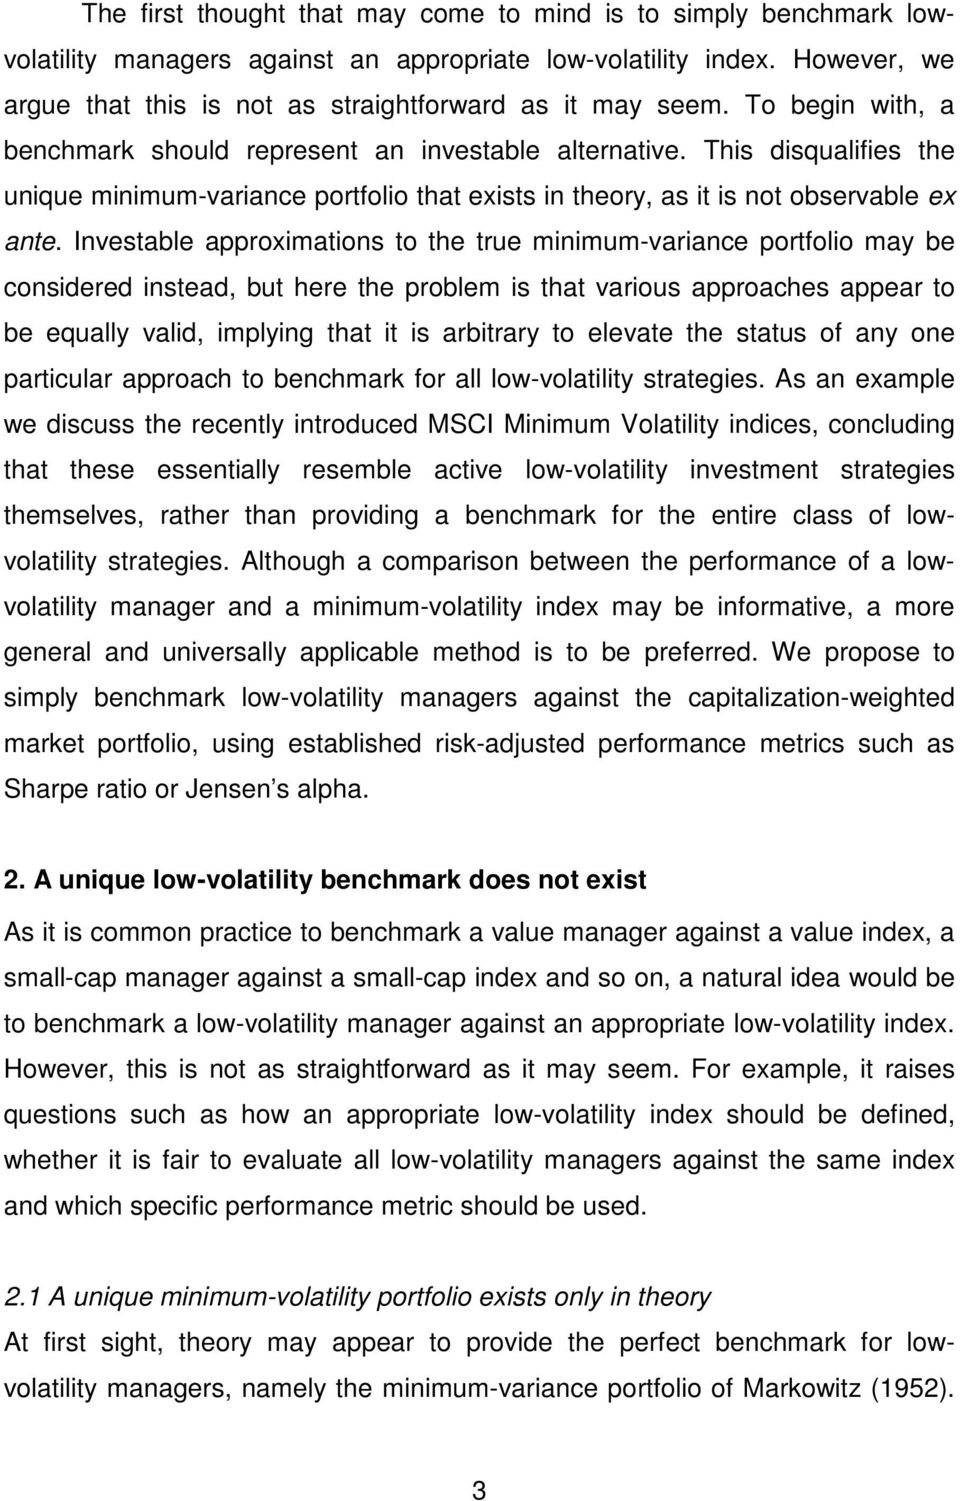 Investable approximations to the true minimum-variance portfolio may be considered instead, but here the problem is that various approaches appear to be equally valid, implying that it is arbitrary